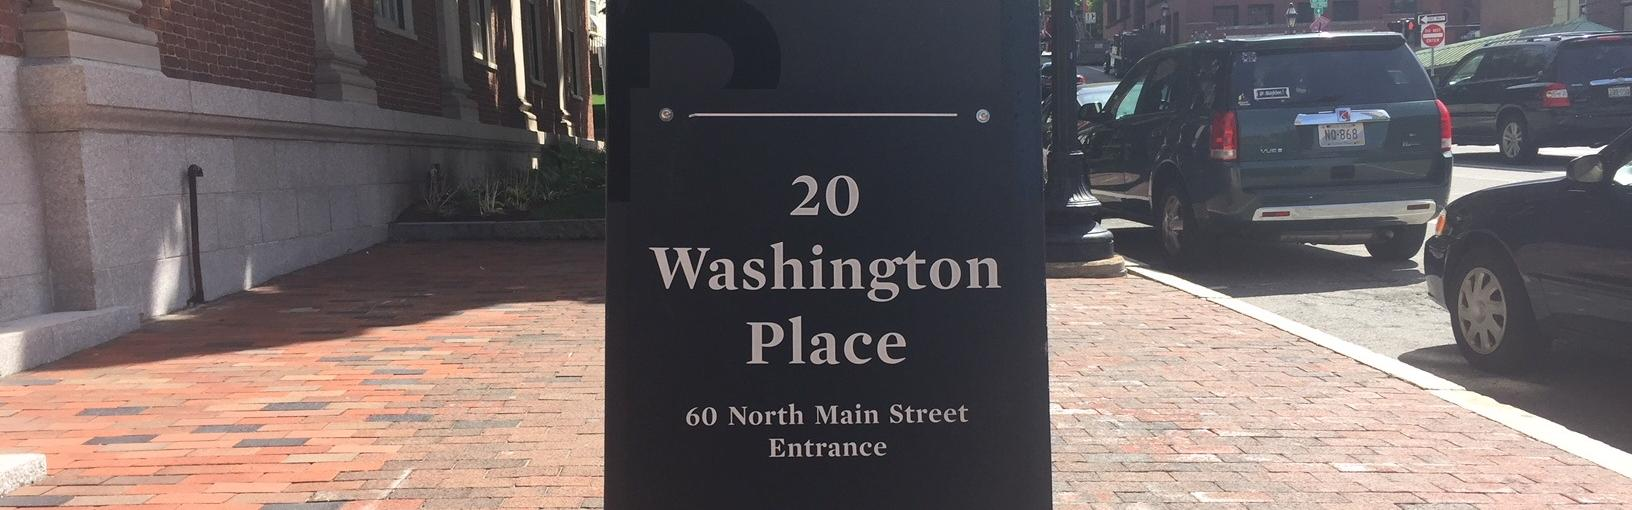 entrance to 20 Washington Place